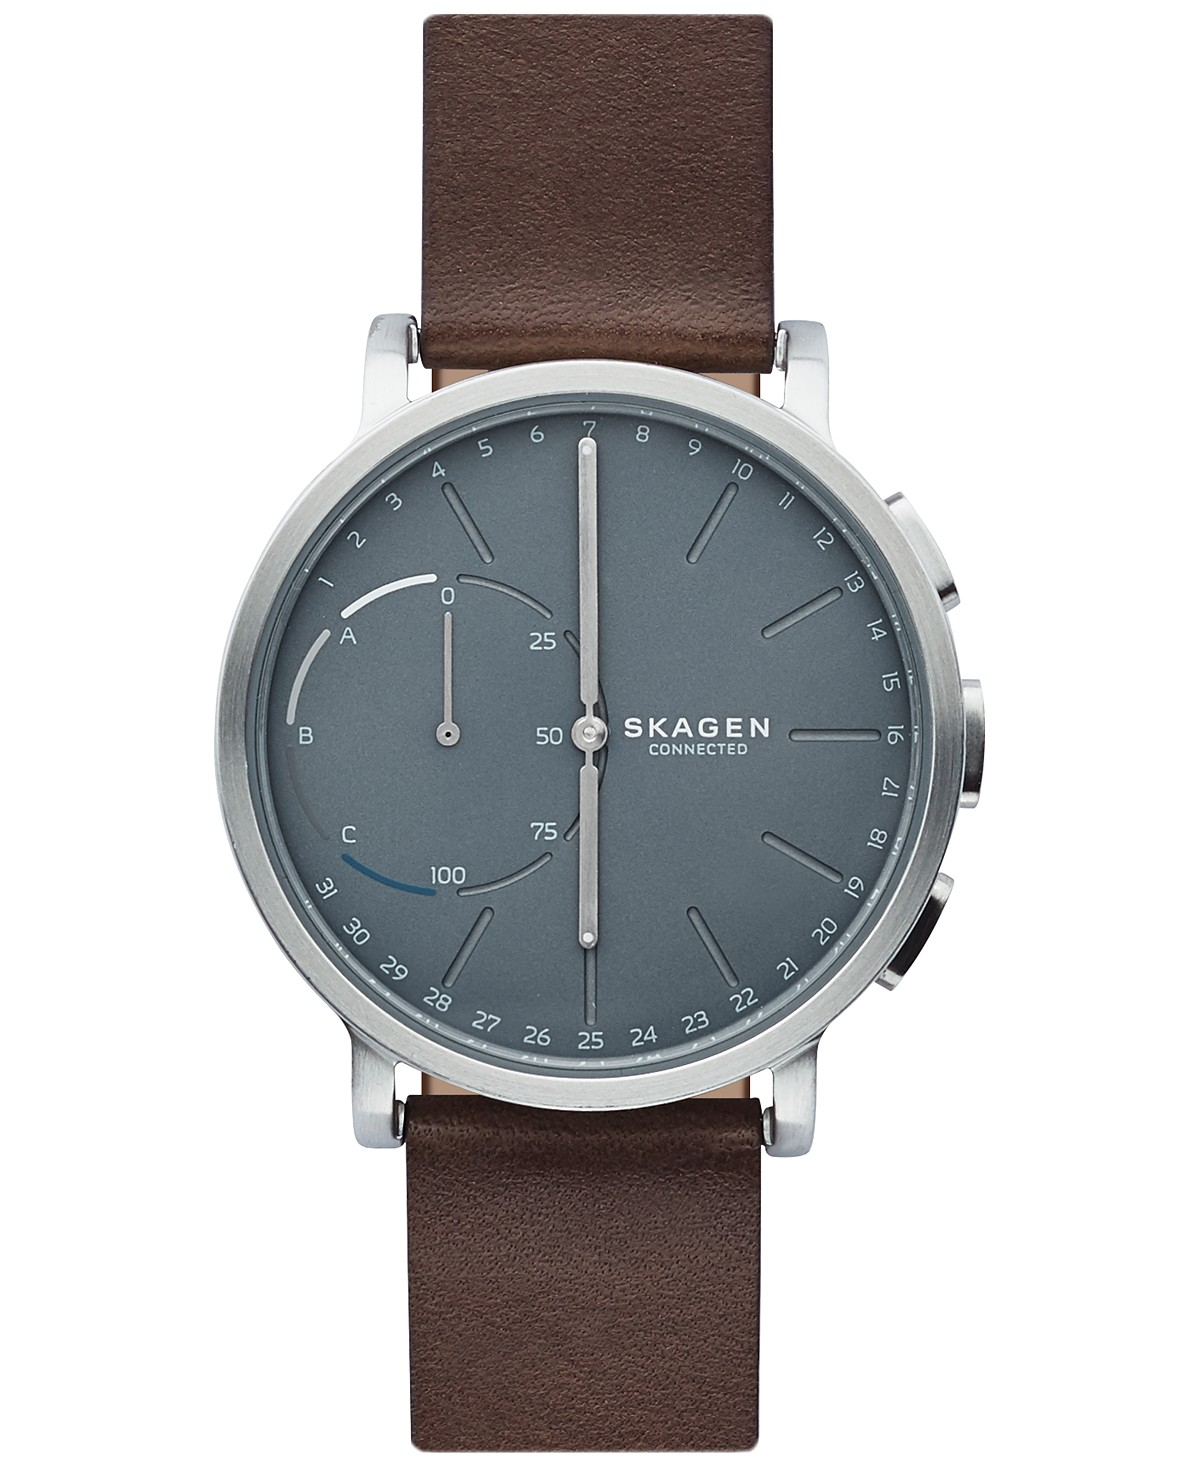 Skagen Hagan Brown Leather Strap Hybrid Smart Watch